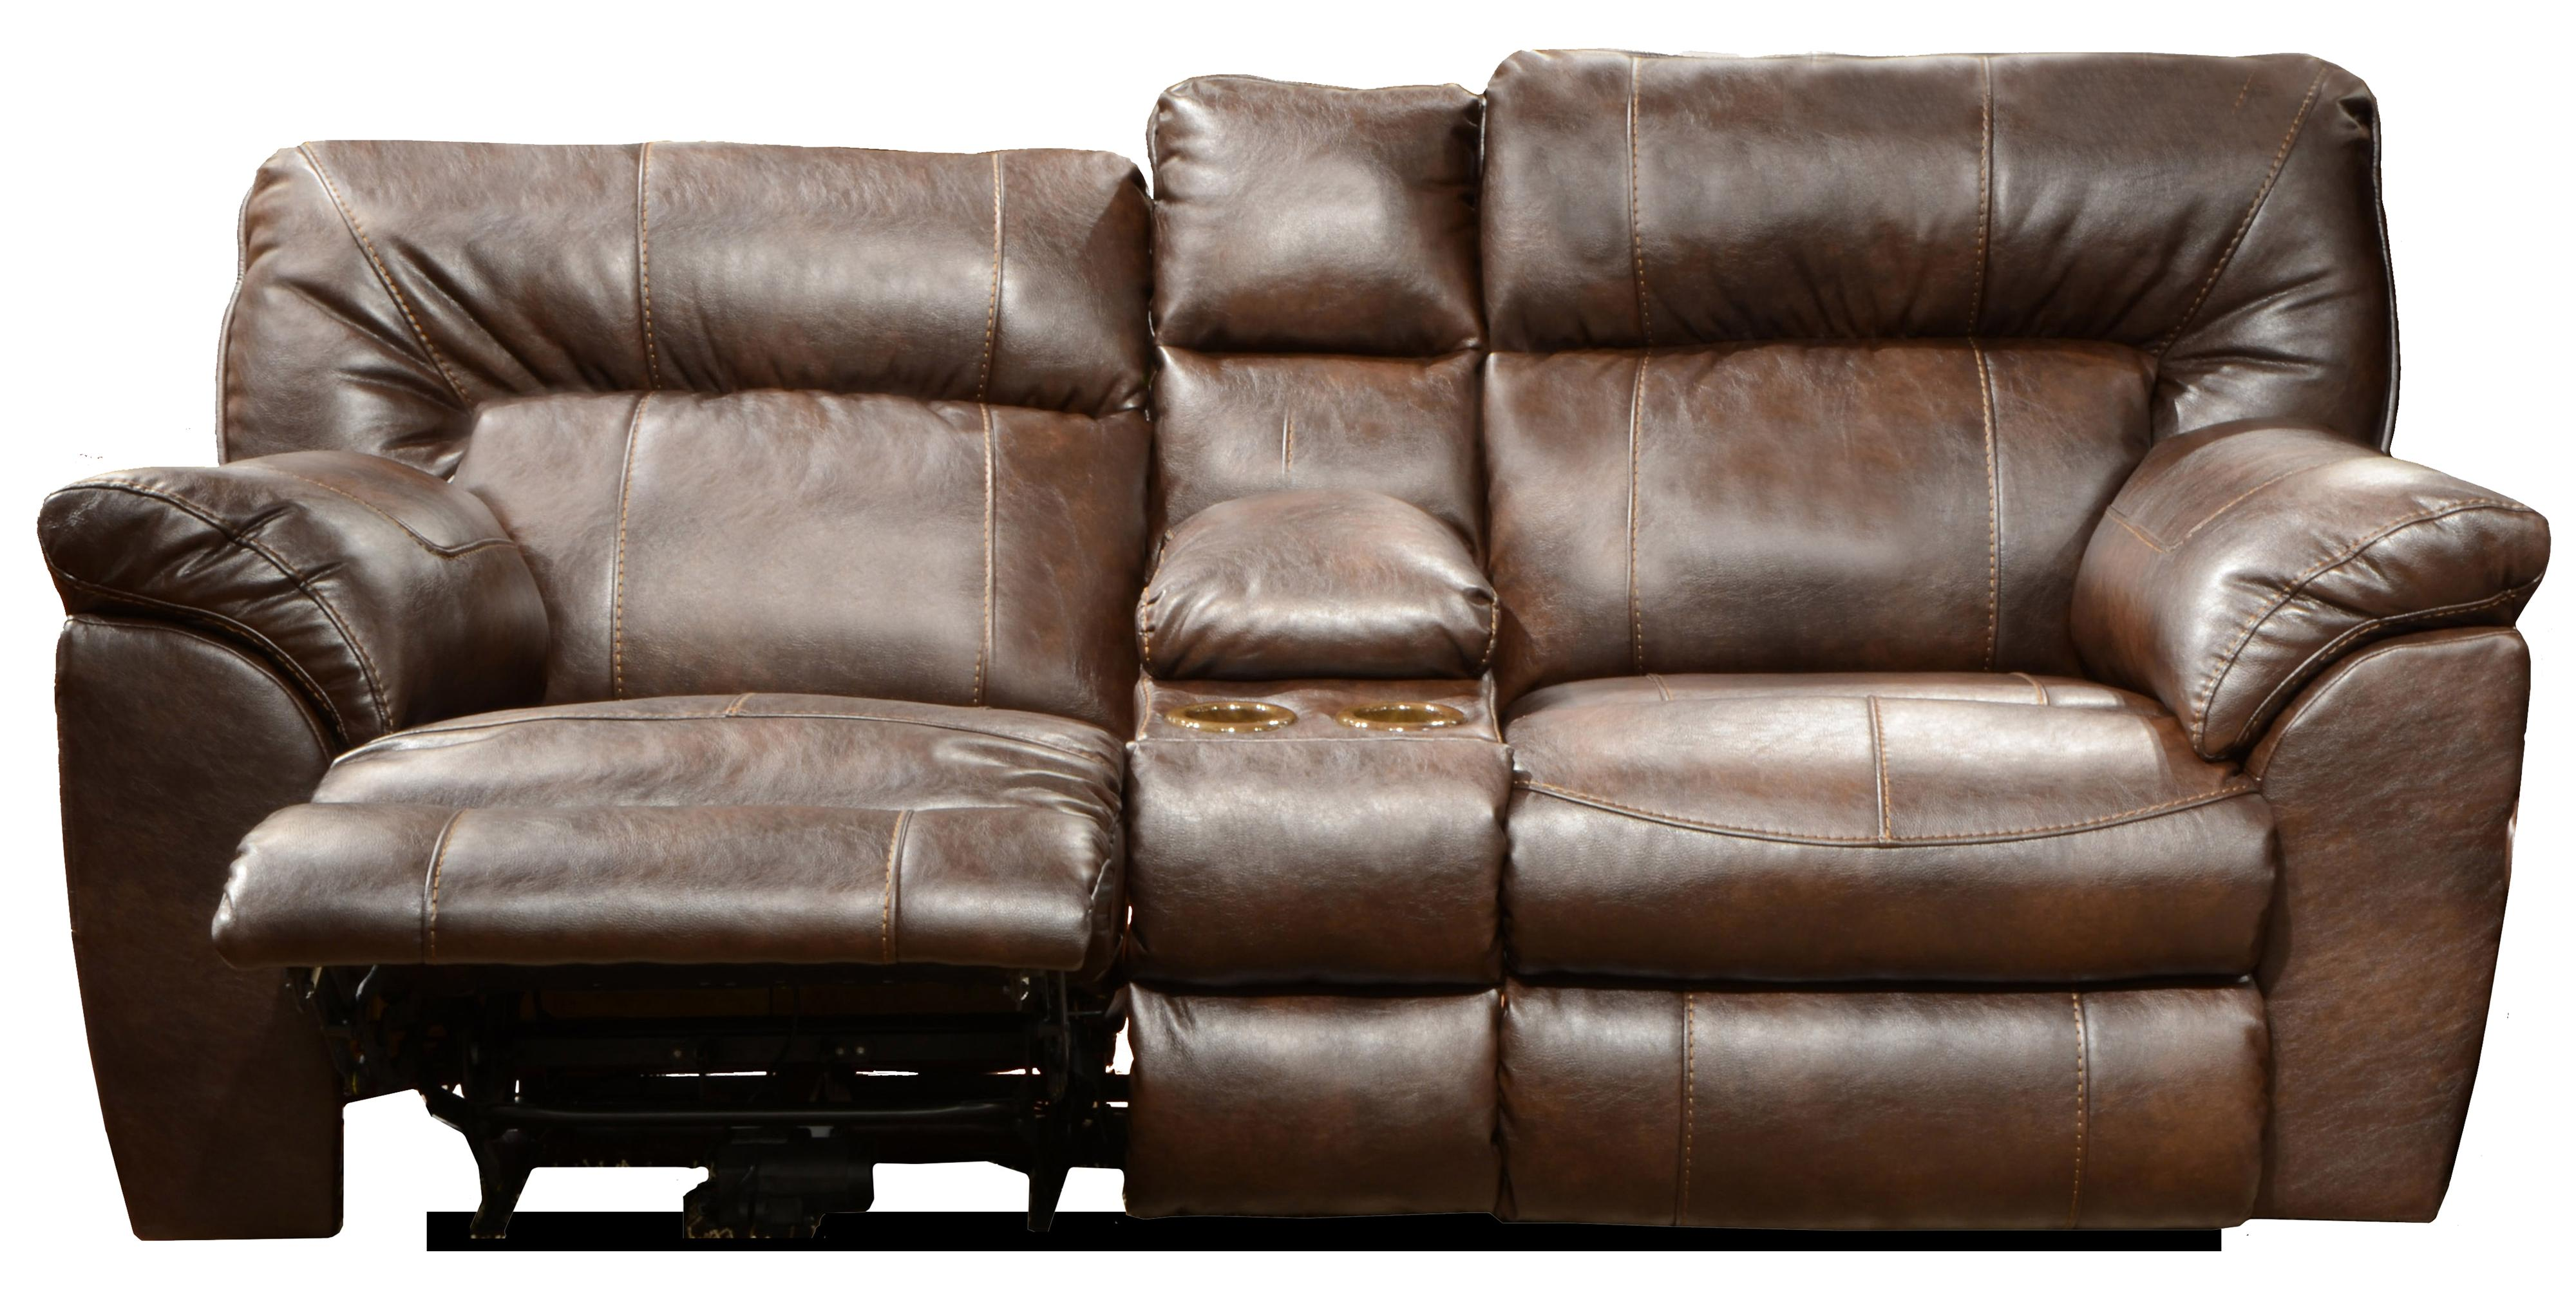 item number signature by recliner ashley toletta seat design products wide chocolate double power